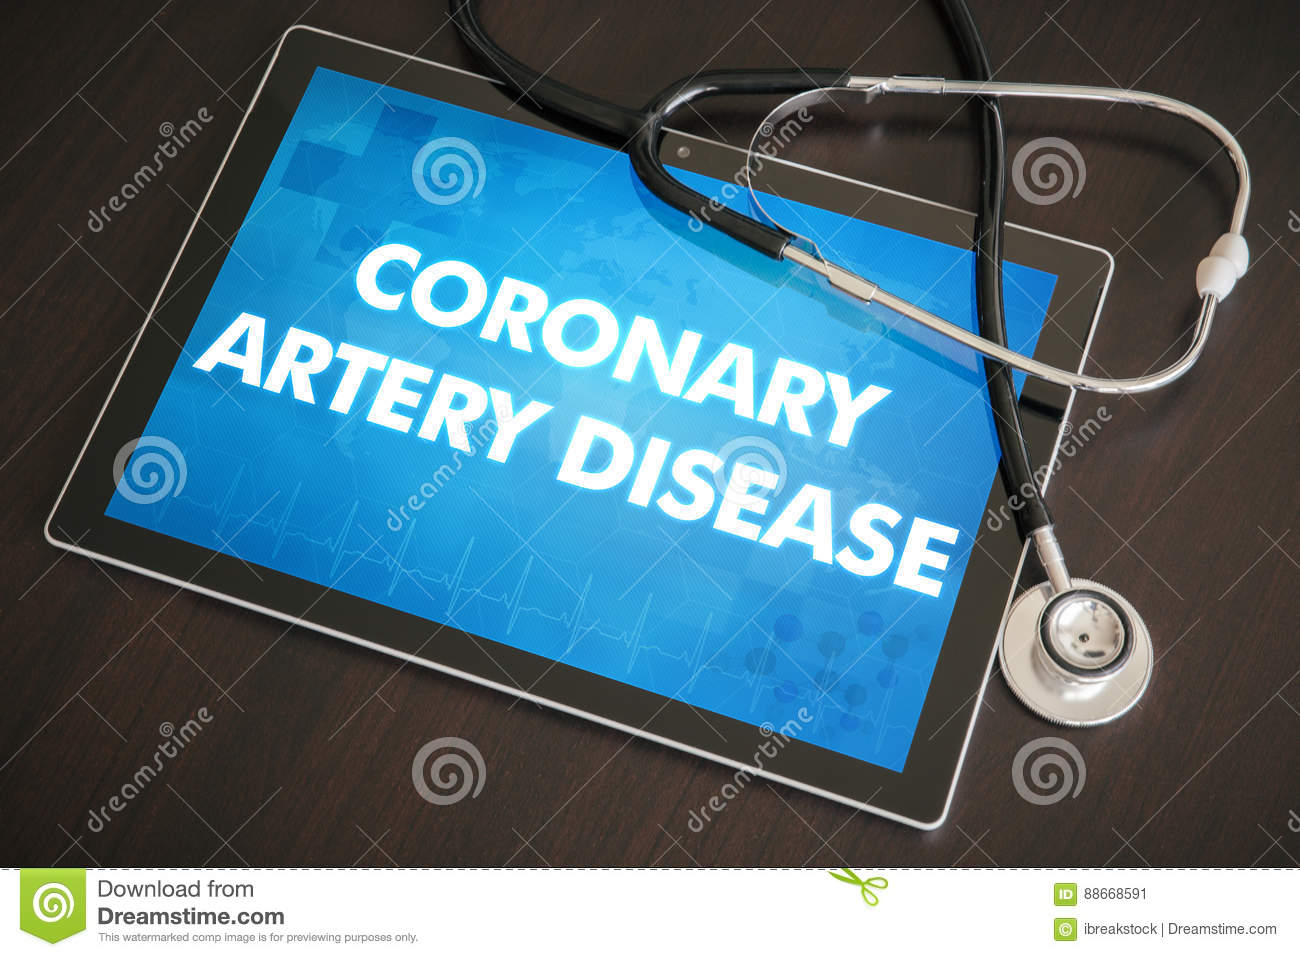 Coronary artery disease (heart disorder) diagnosis medical concept on tablet screen with stethoscope